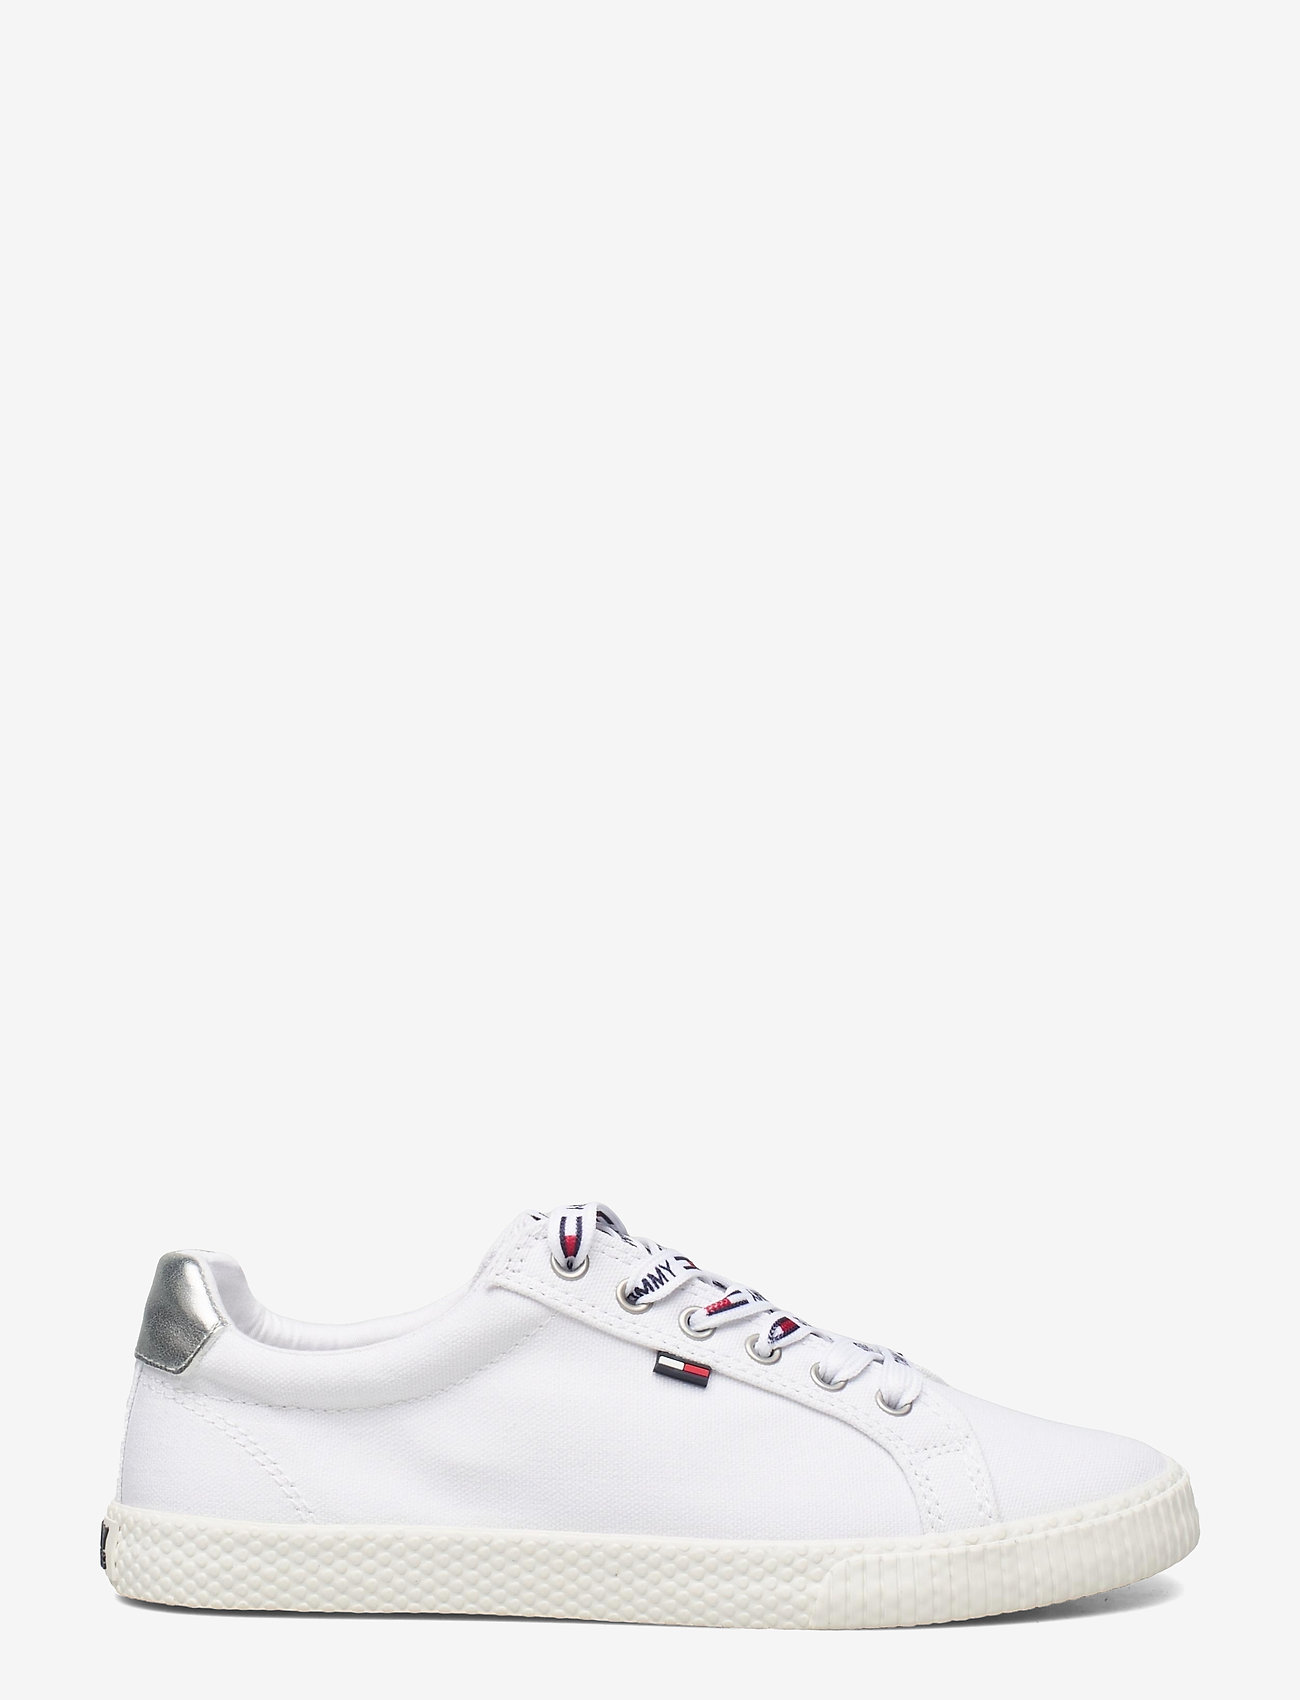 Tommy Hilfiger - TOMMY JEANS CASUAL SNEAKER - low top sneakers - white - 1